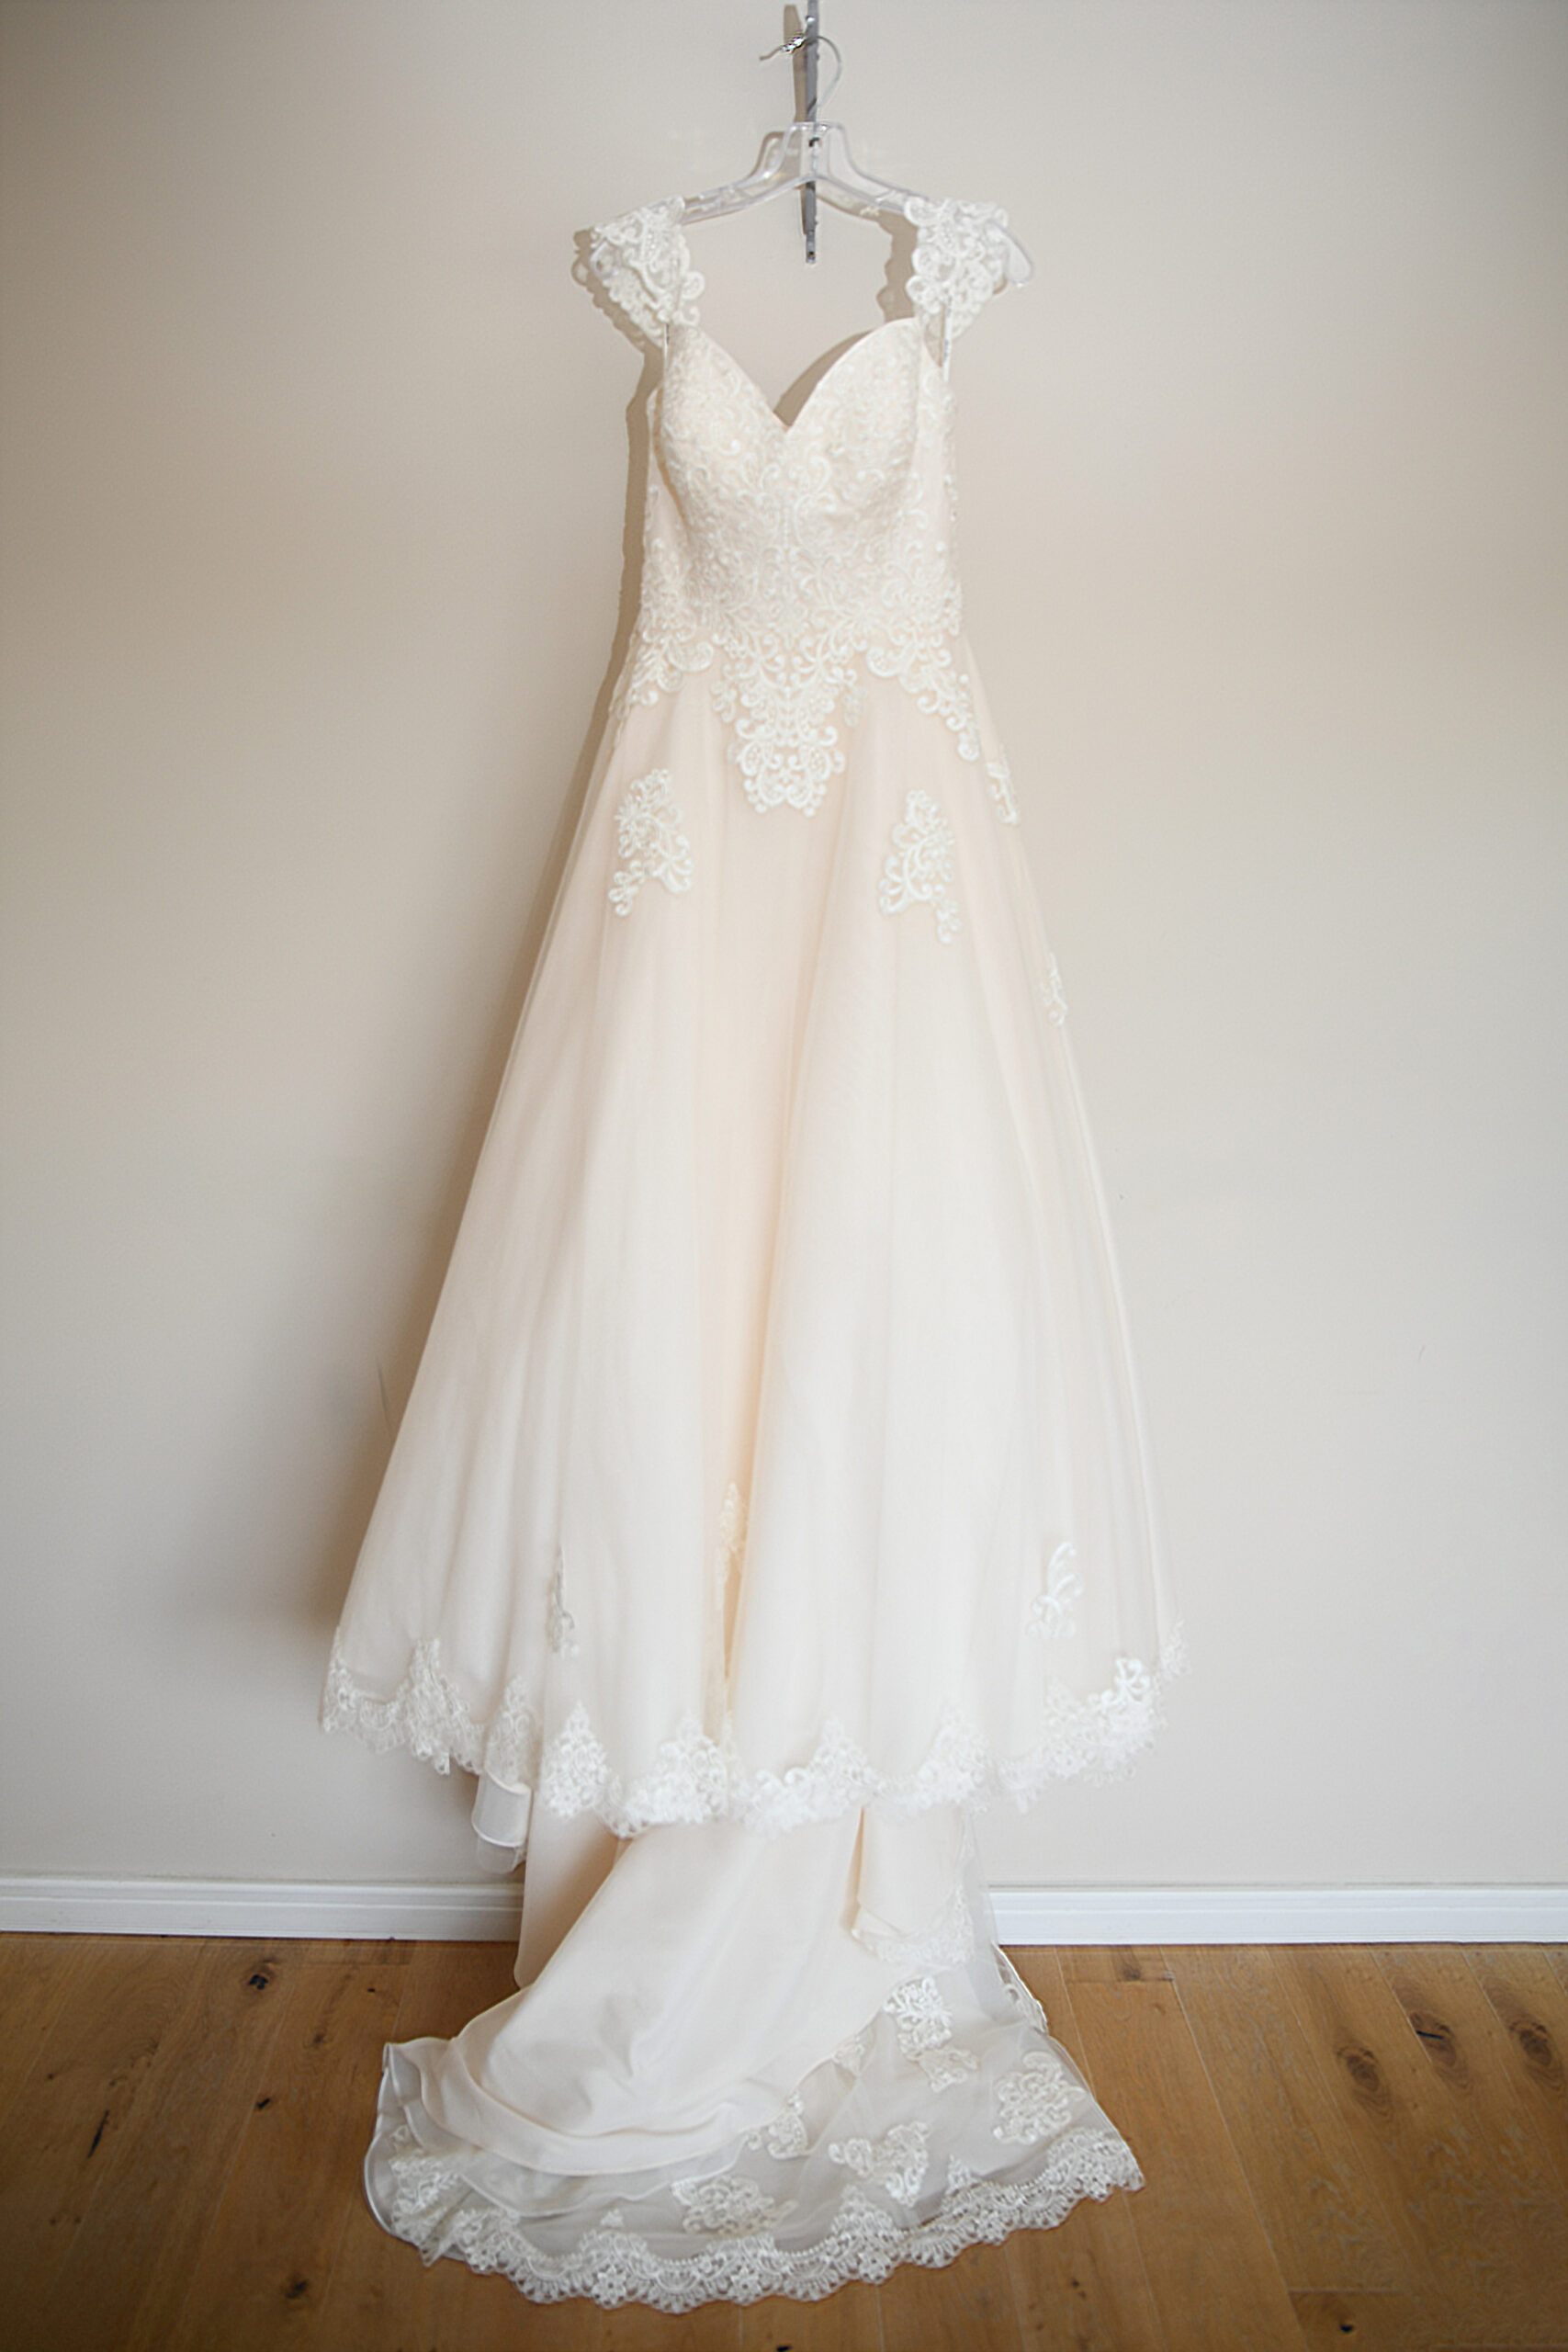 Wedding Dress at the Bridal Suite Wootton Park